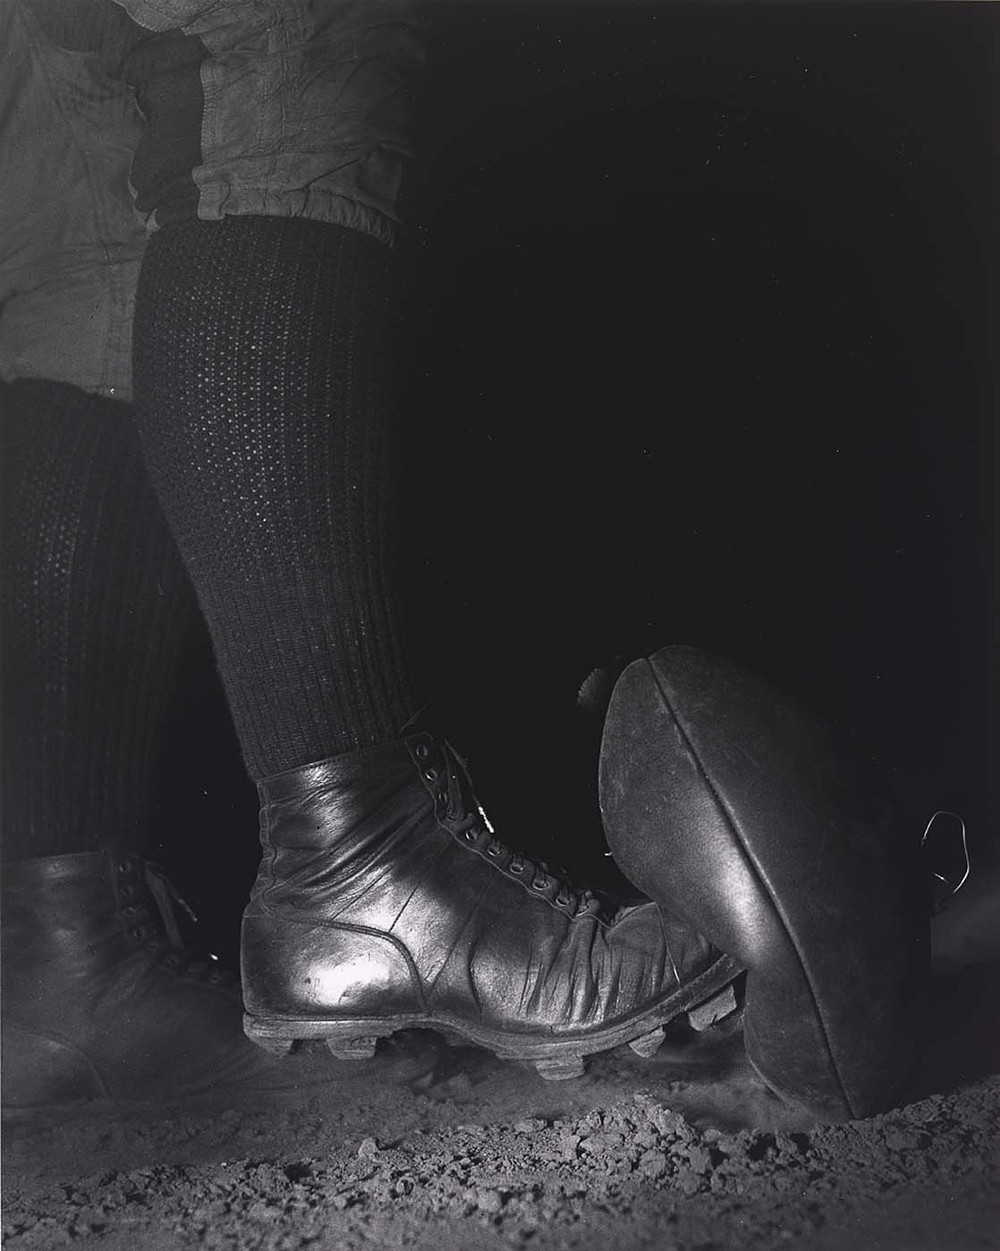 Wesely Fesler kicking a football, Boston, 1934 by Harold E. Edgerton .jpeg